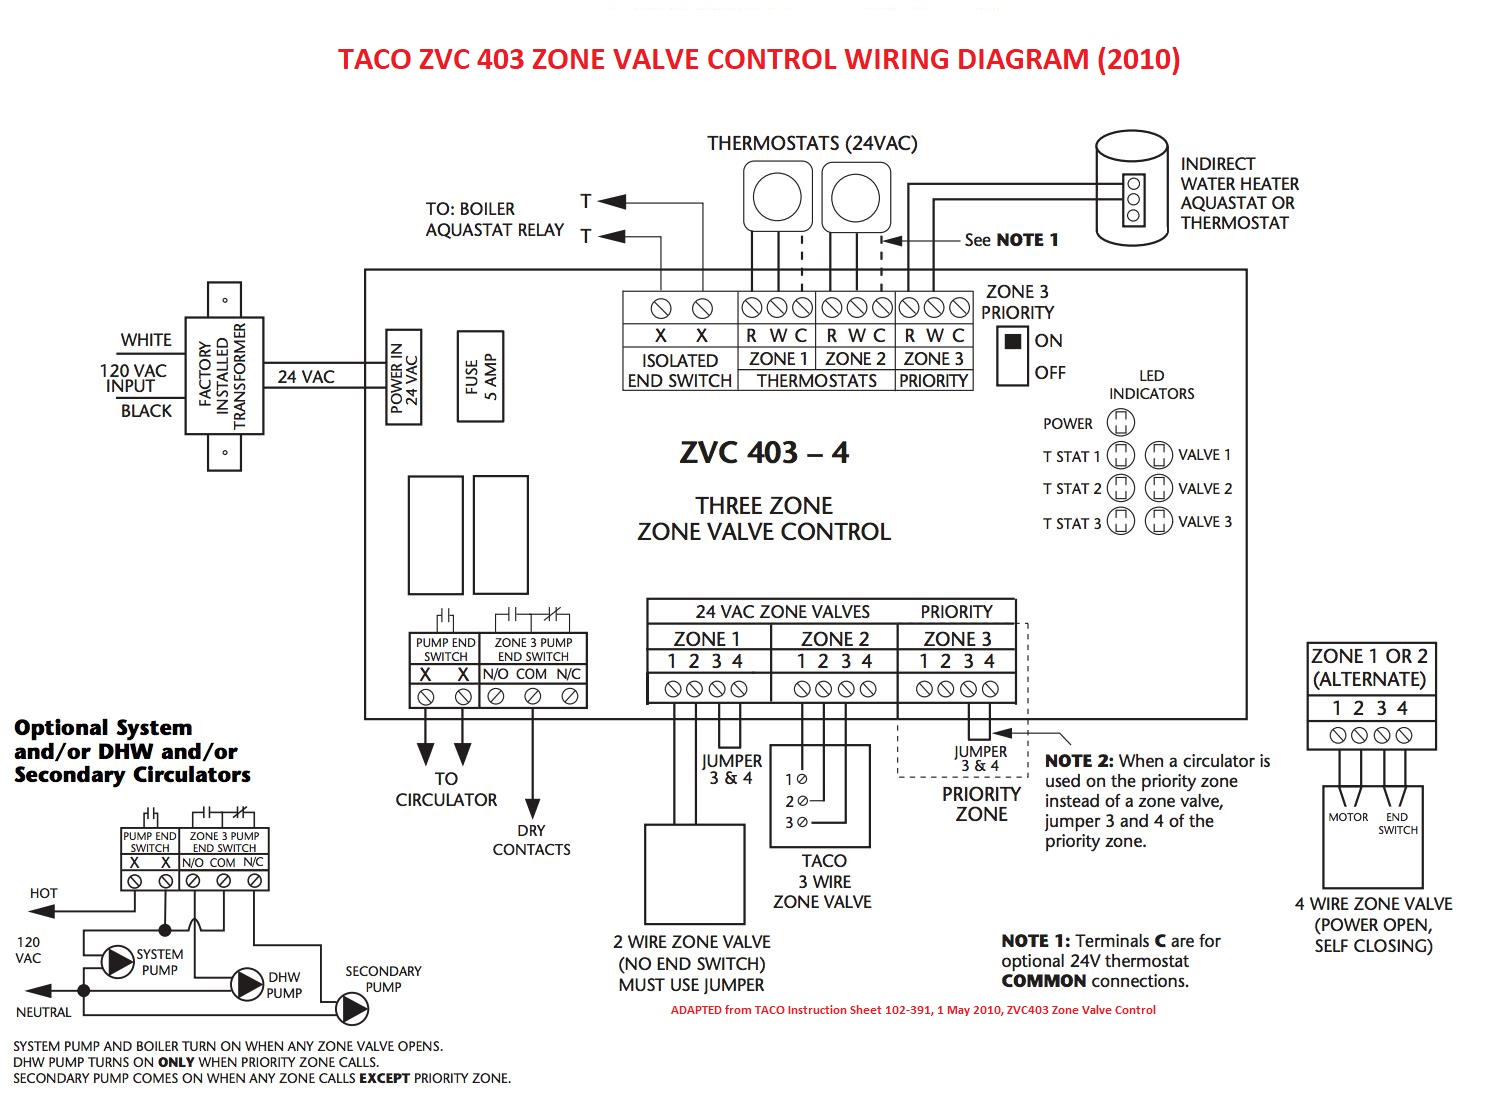 lace alumitone wiring schematic wiring diagram insideLace Alumitone Wiring Schematic #6